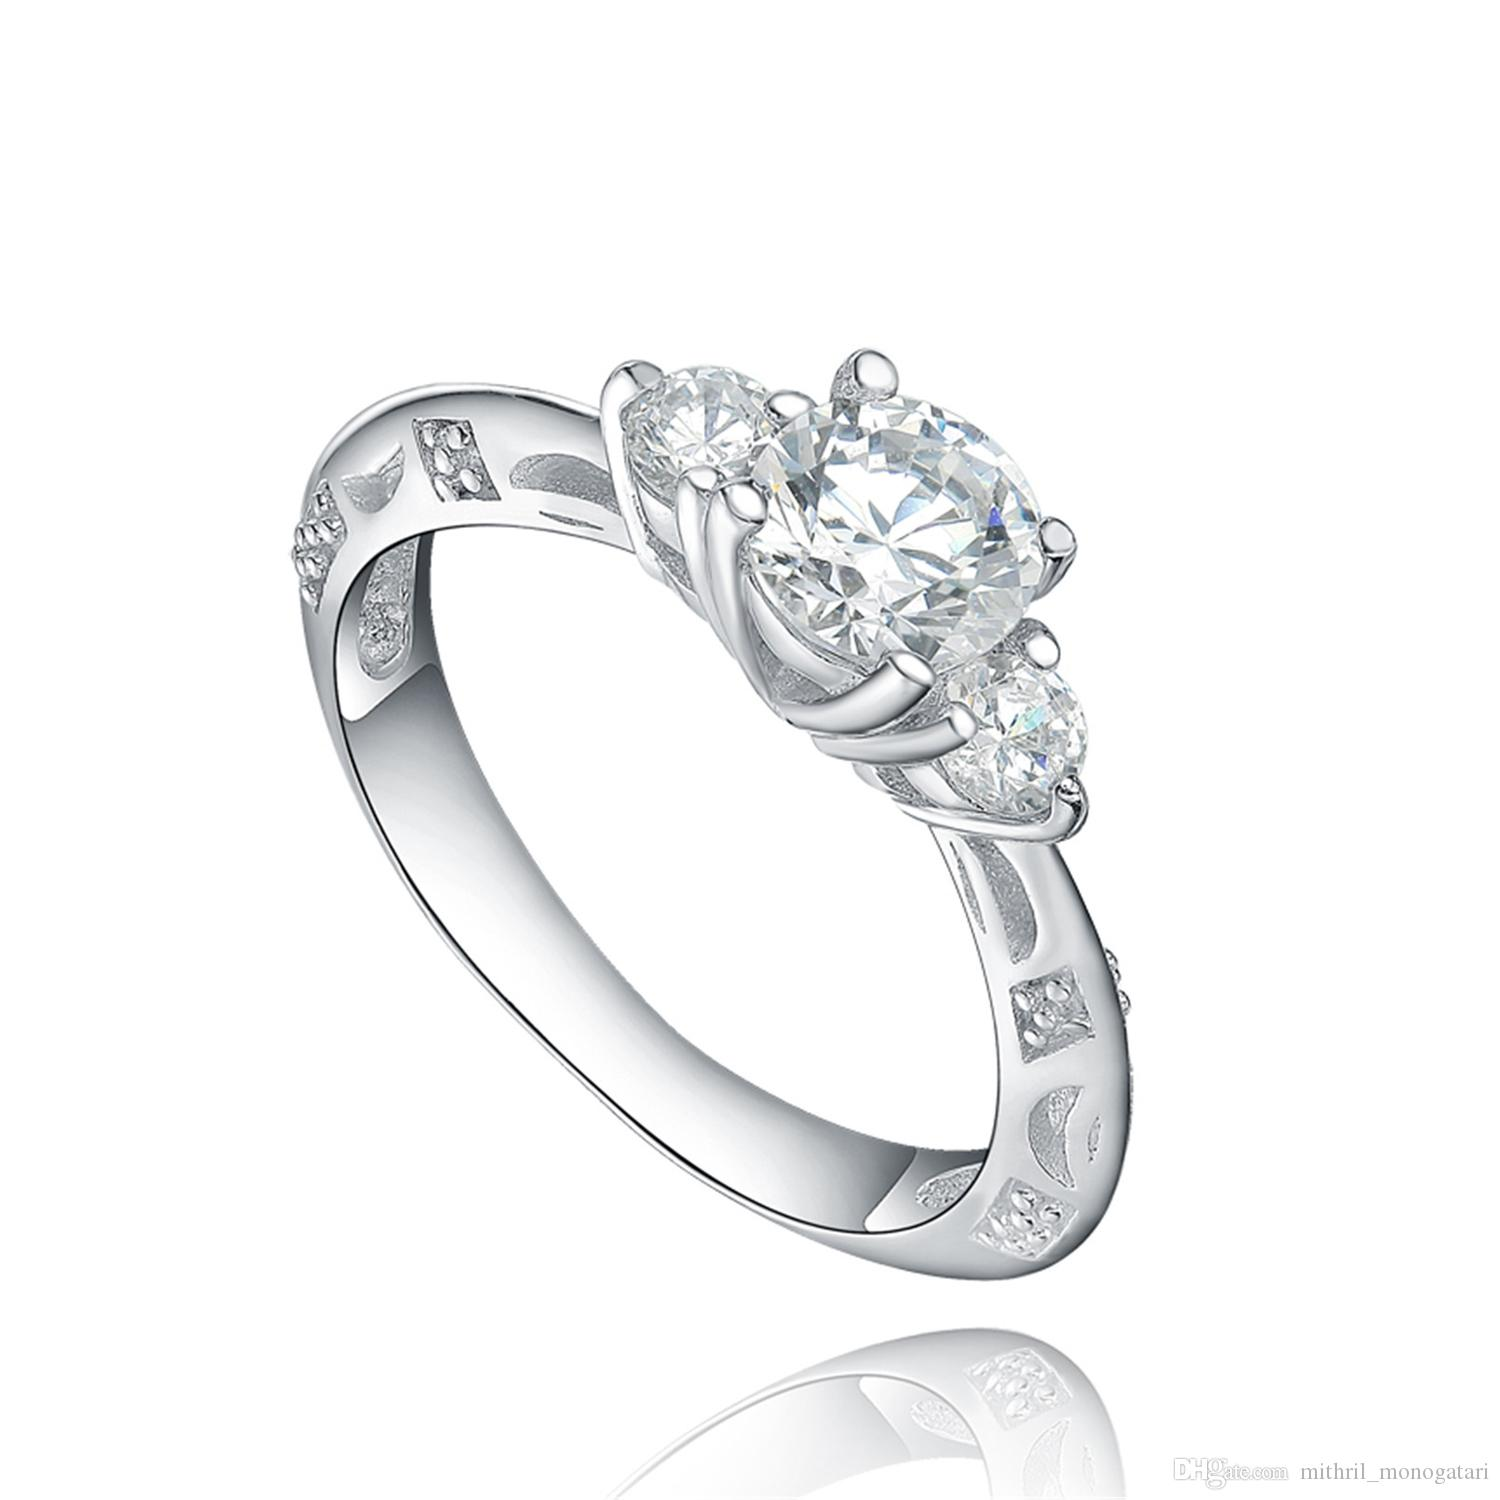 engagement premier square product double online shape of cluster retailer pear rings diamond ring halo file